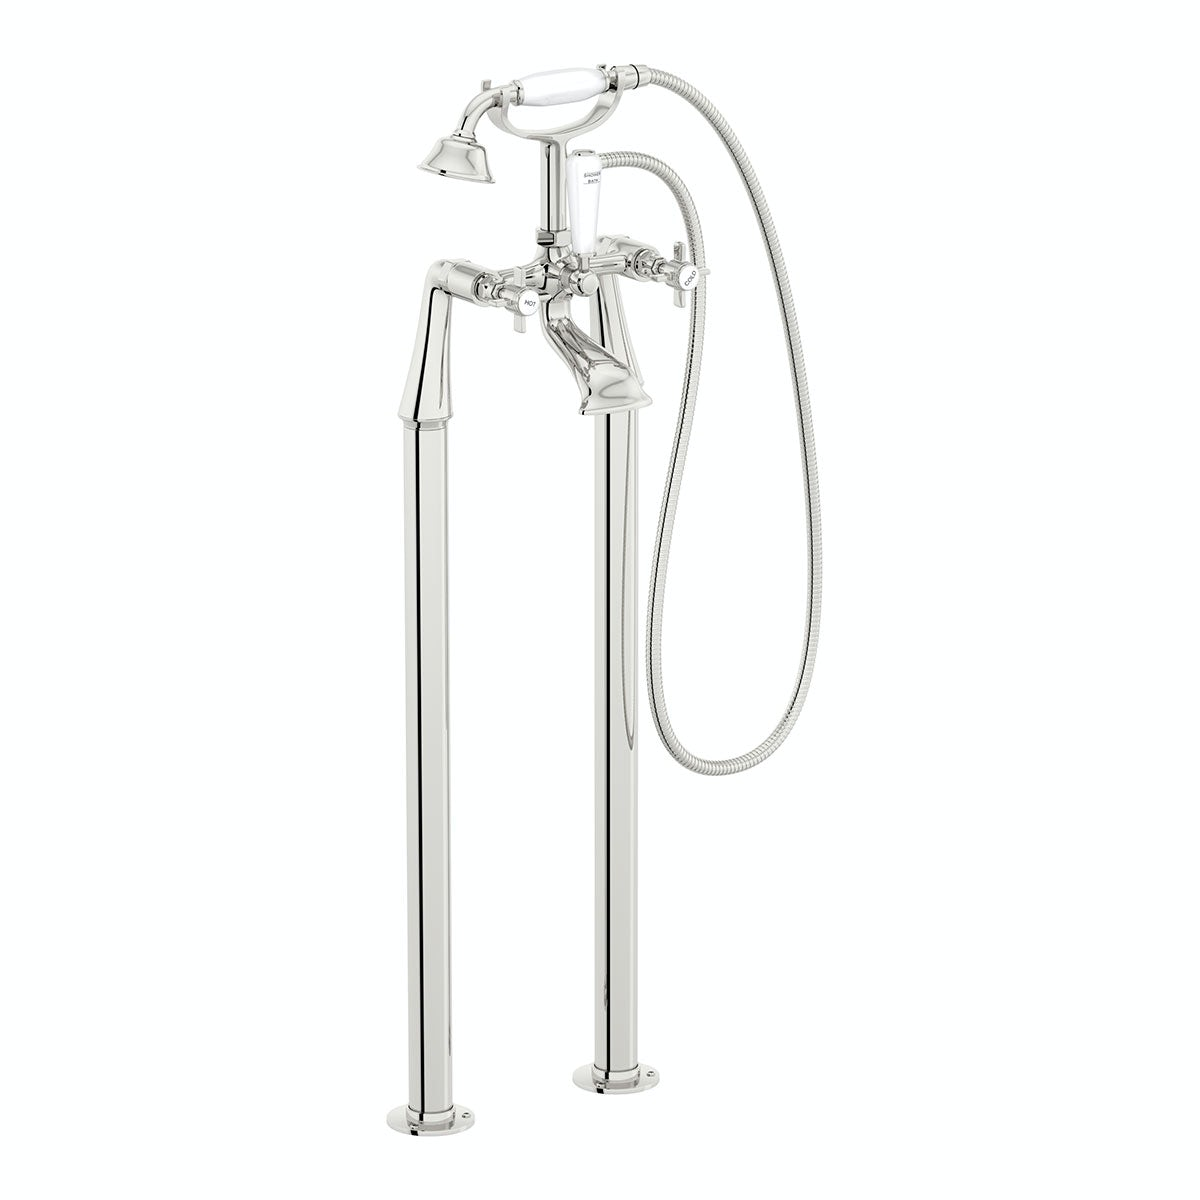 The Bath Co. Dulwich bath shower mixer and standpipe pack